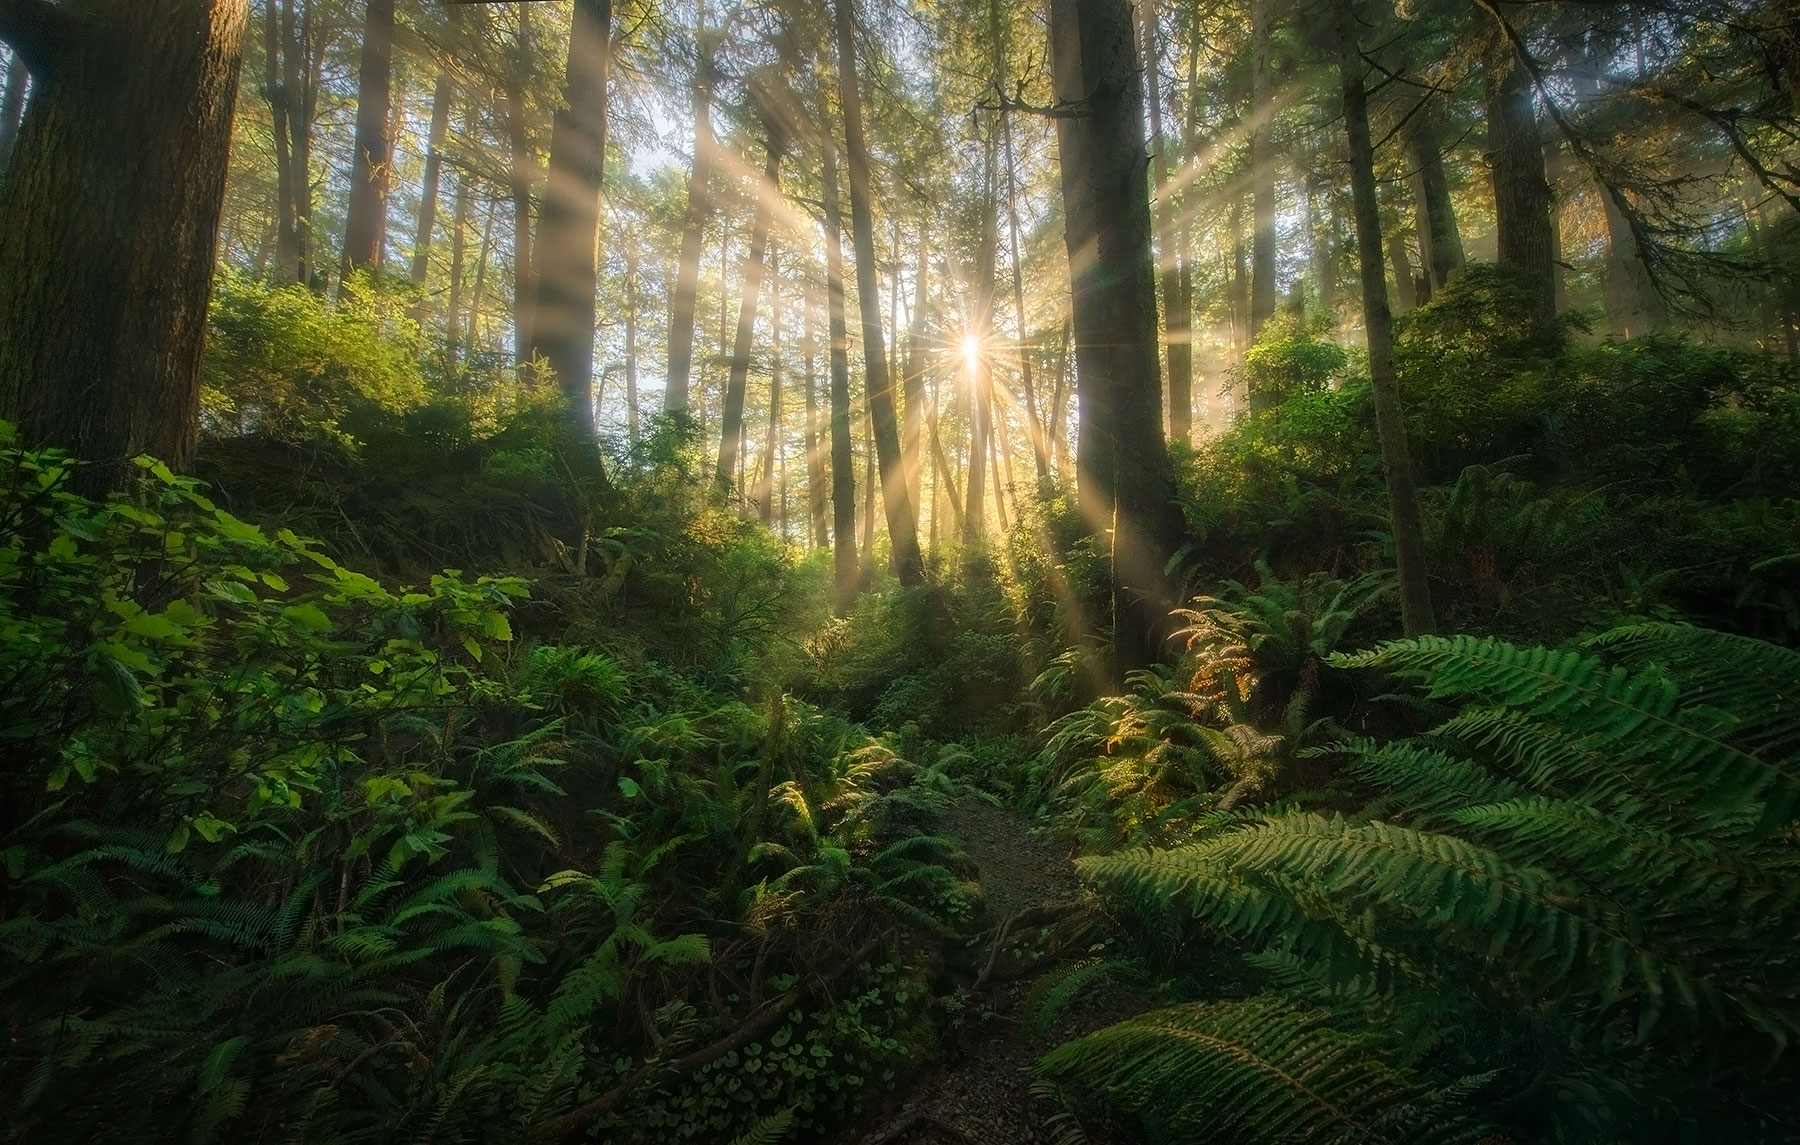 Green, Spring, Olympic, Washington, Rain Forest, photo